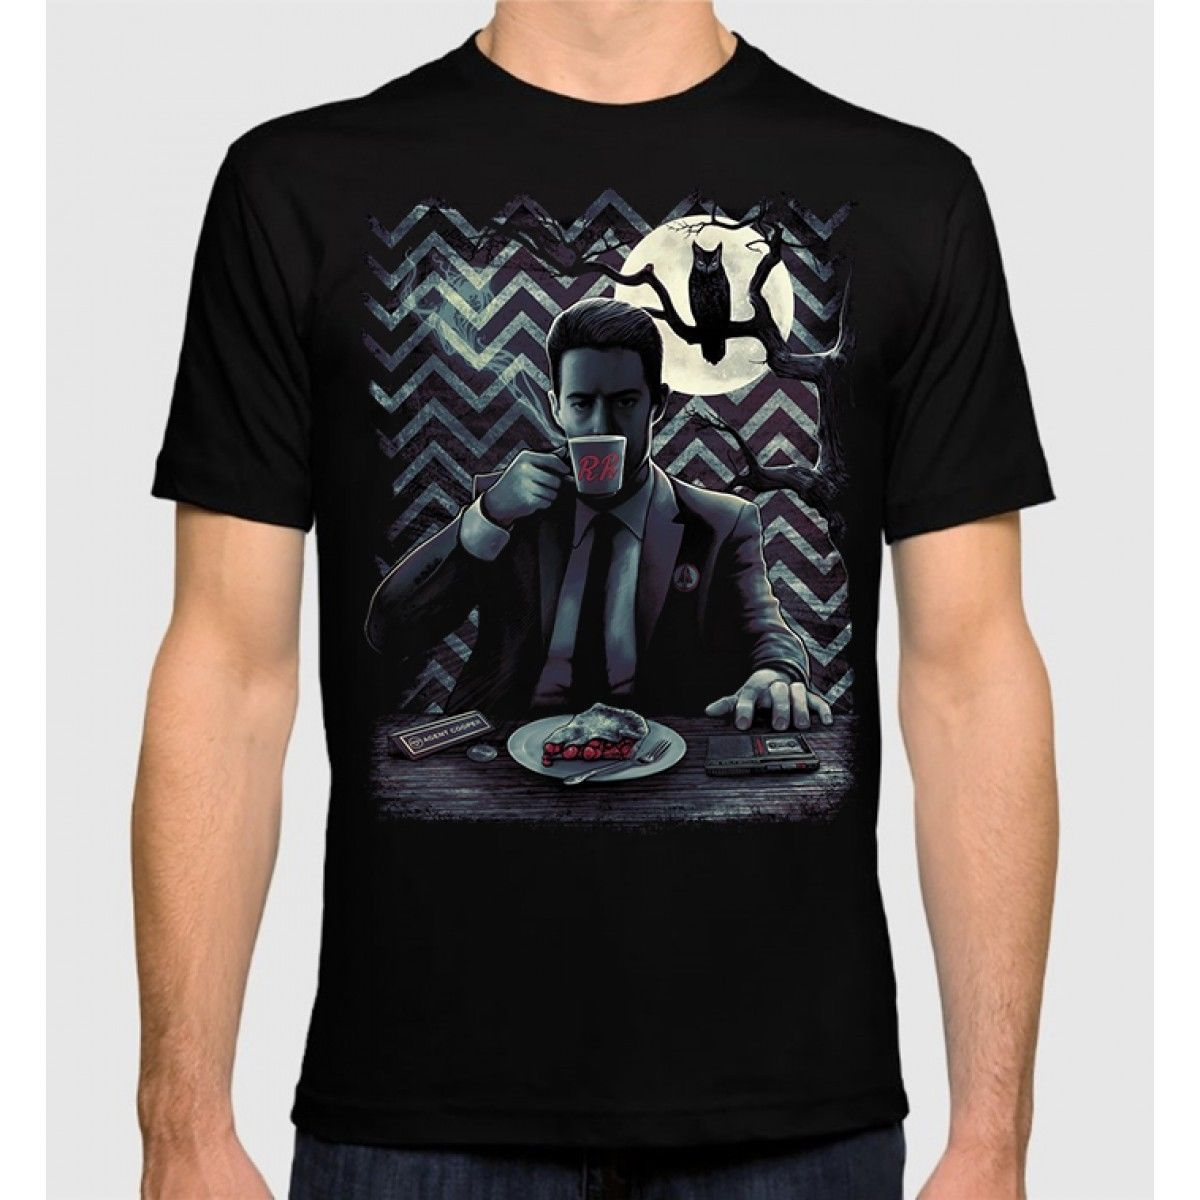 Twin Peaks Agent Cooper T-Shirt David Lynch 100% Cotton New Dale Cooper Tee T Shirt Men Black Short Sleeve Cotton Hip Hop